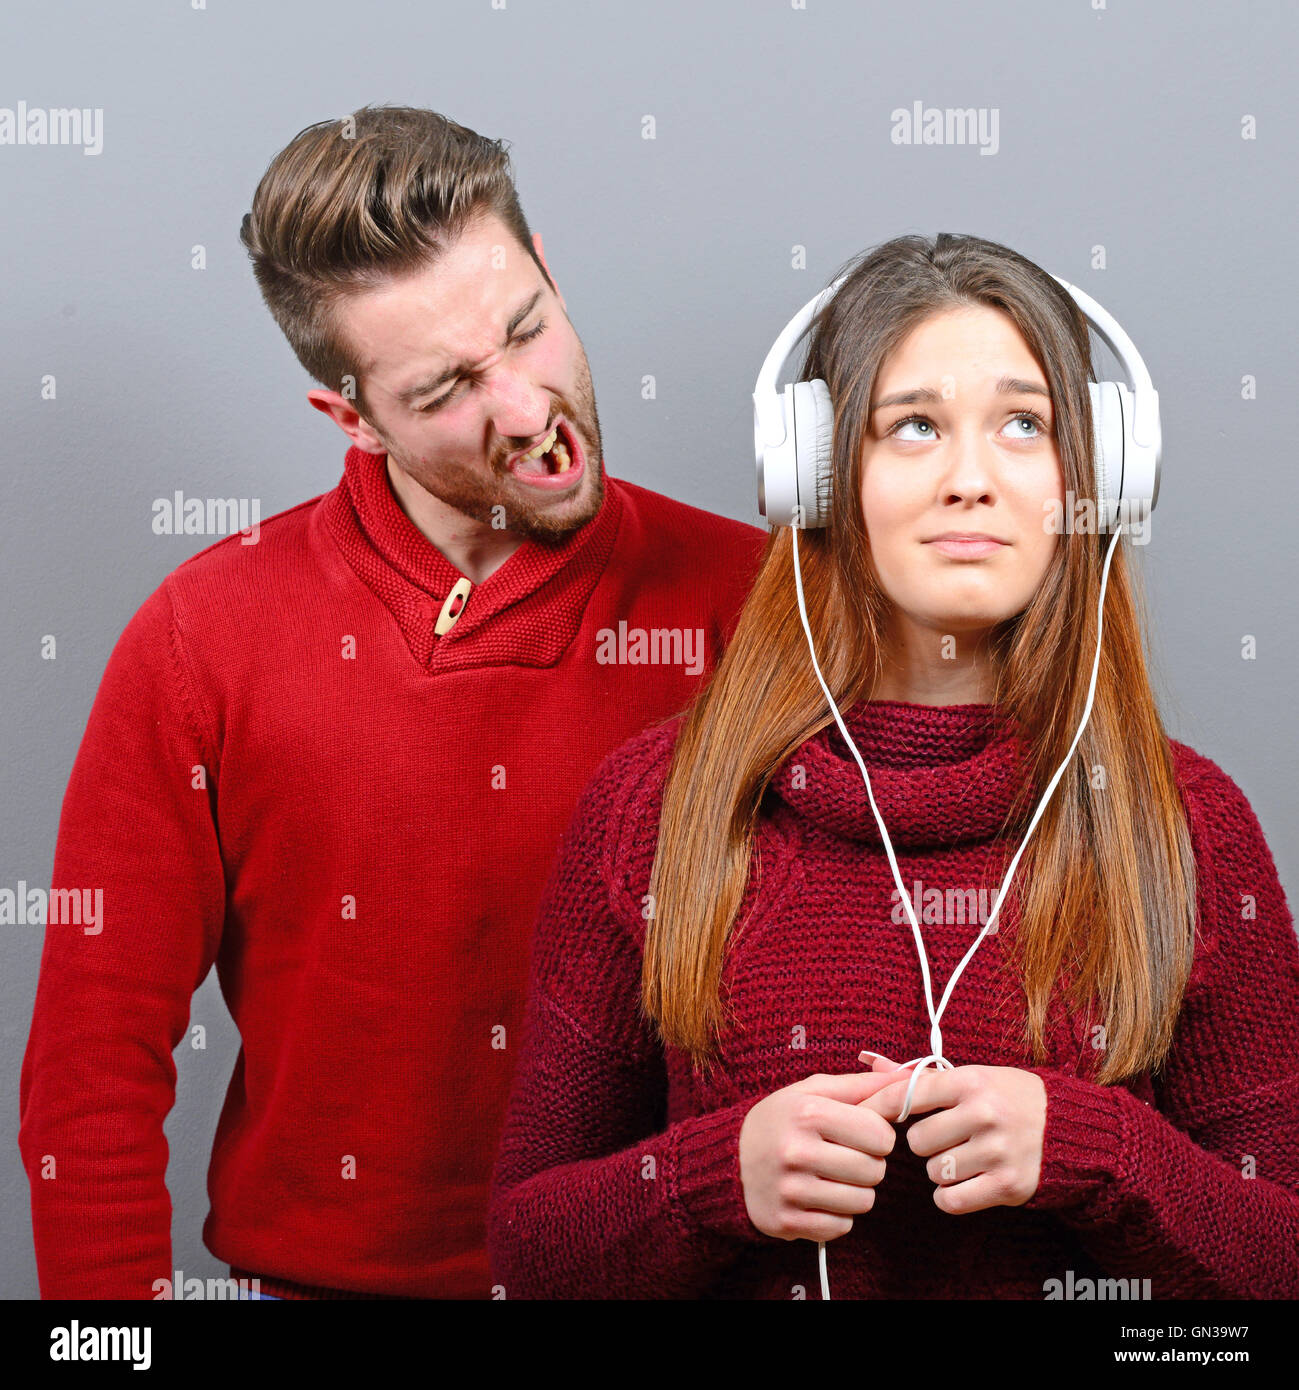 Woman listening to music and doesnt care about him screaming at her - Stock Image